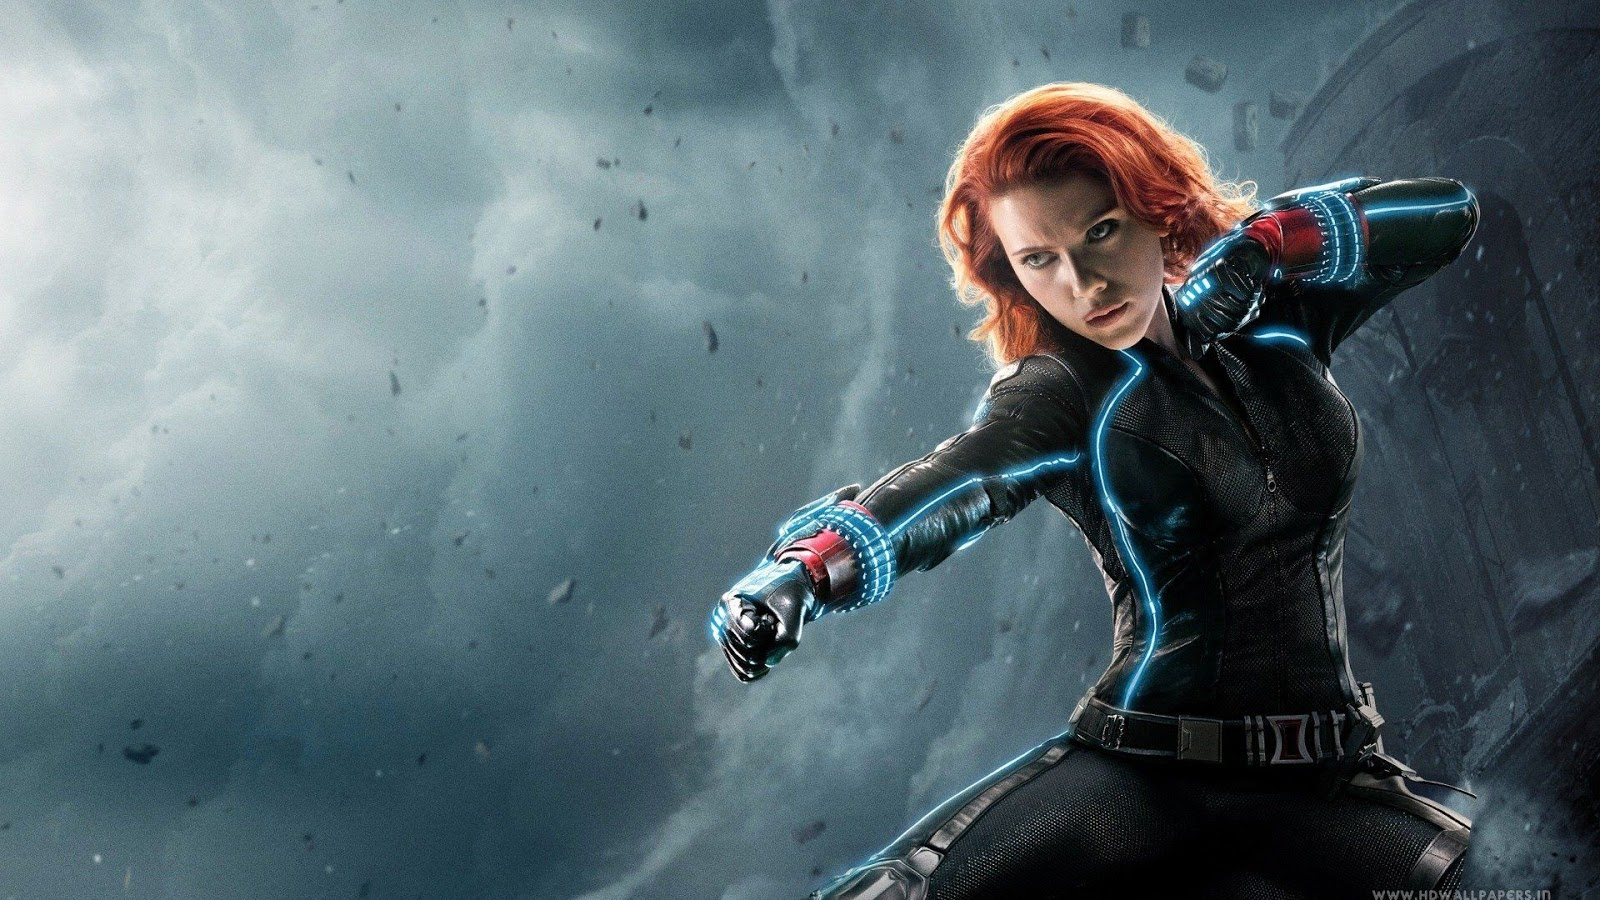 black-widow-wallpaper-endgame